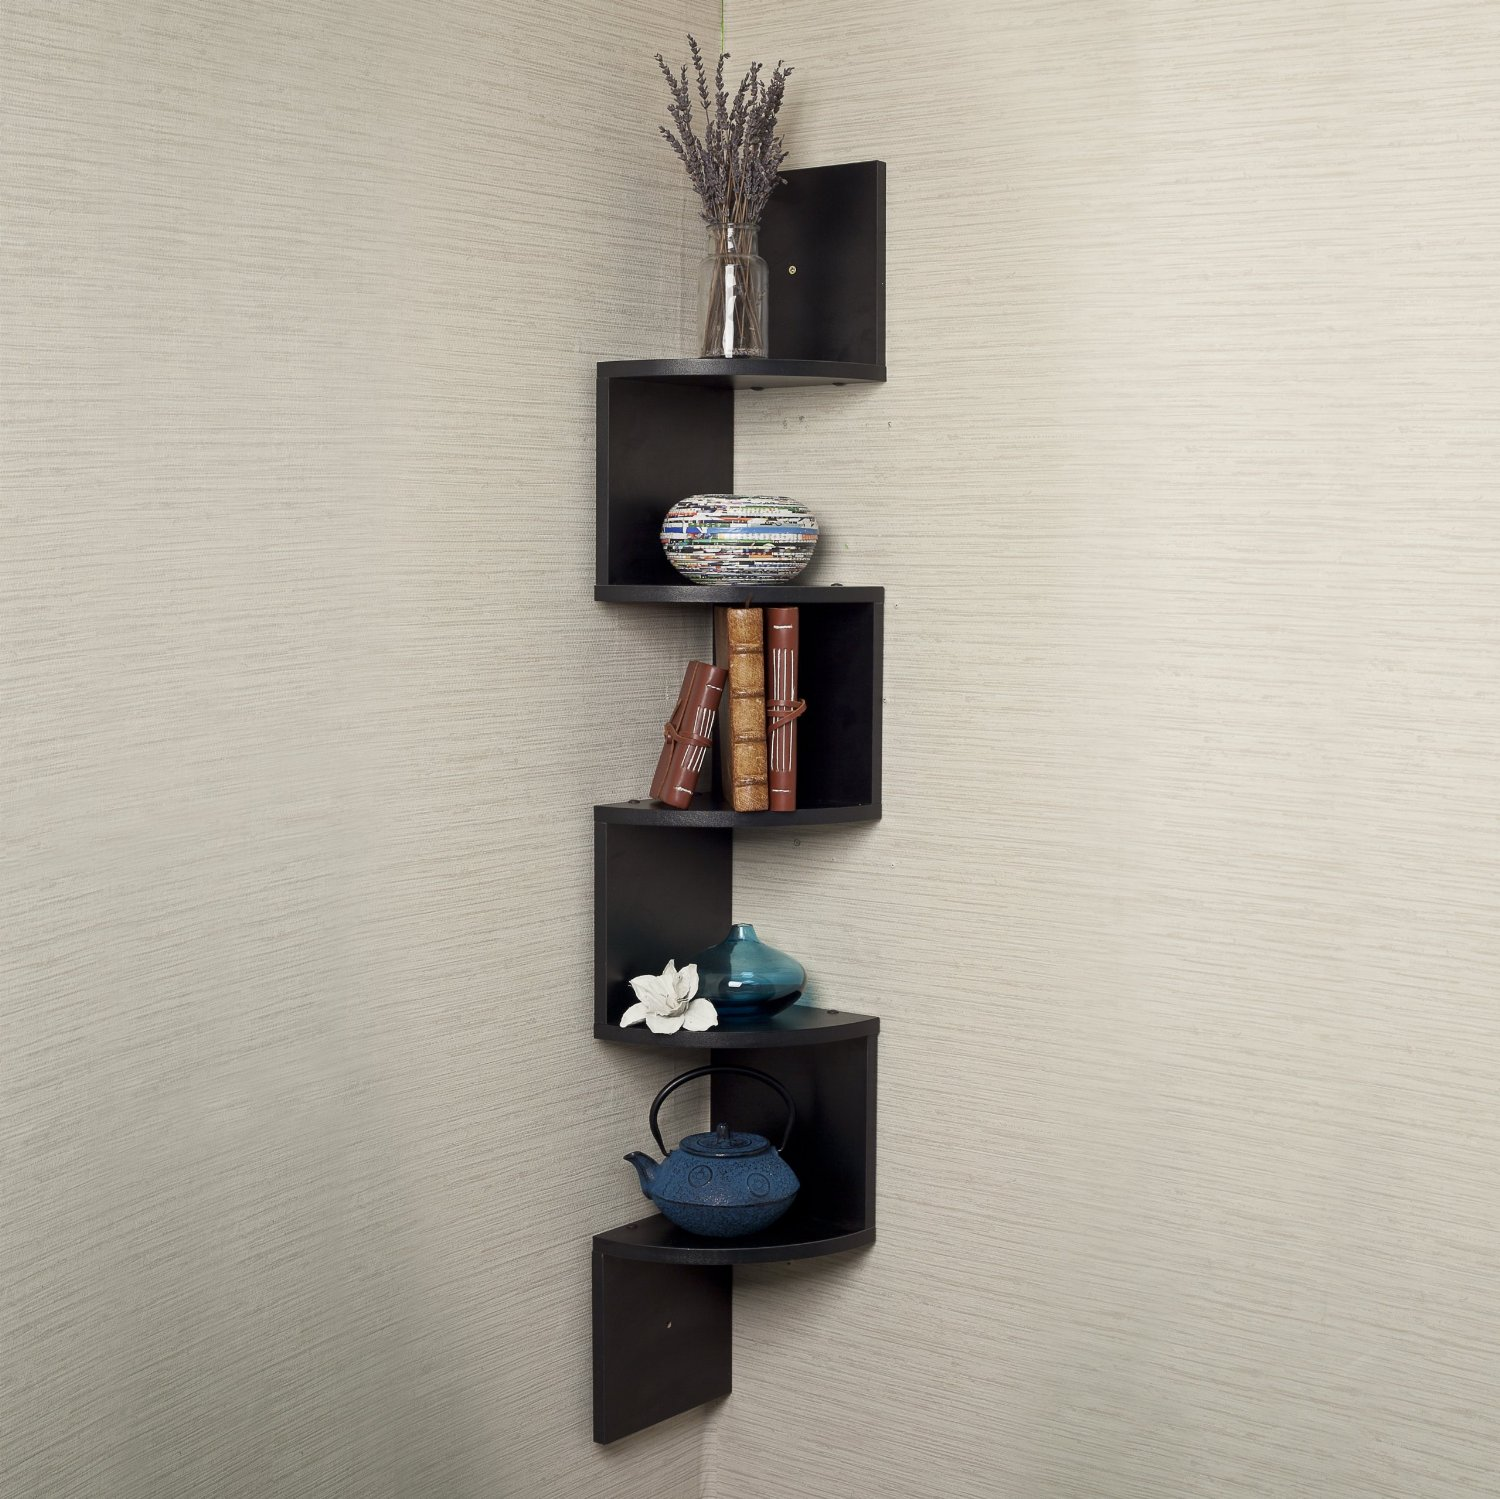 top black floating wall shelves review zigzag corner shelf entryway coat custom design storage building garage cabinets mounted glass shelving system command adhesive hooks dunelm